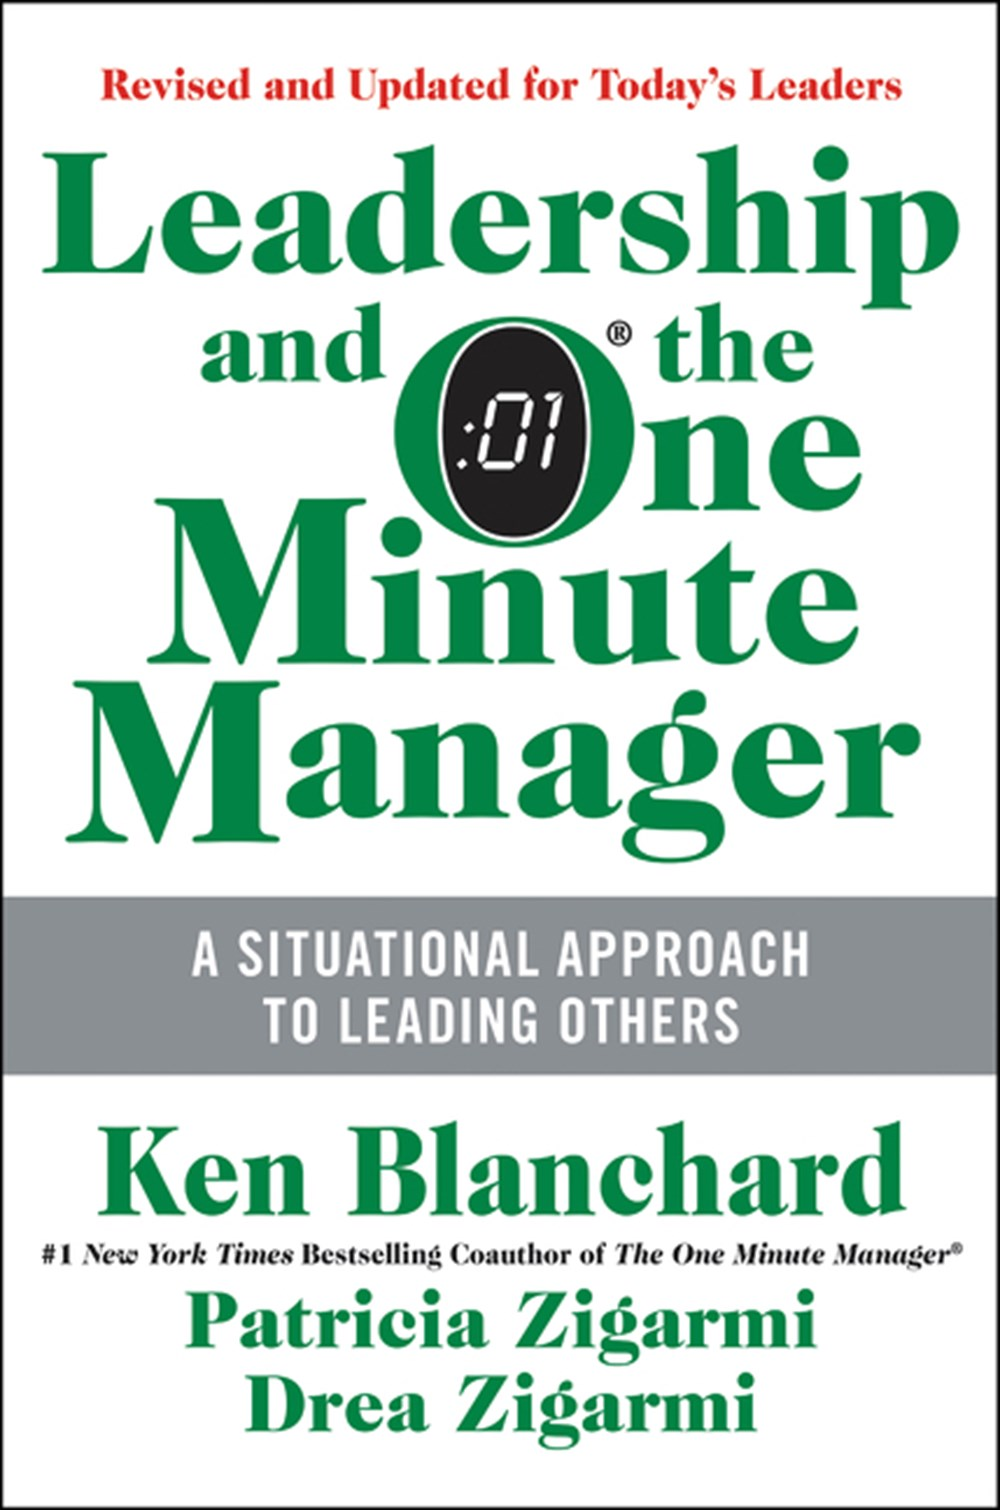 Leadership and the One Minute Manager: Increasing Effectiveness Through Situational Leadership II (U